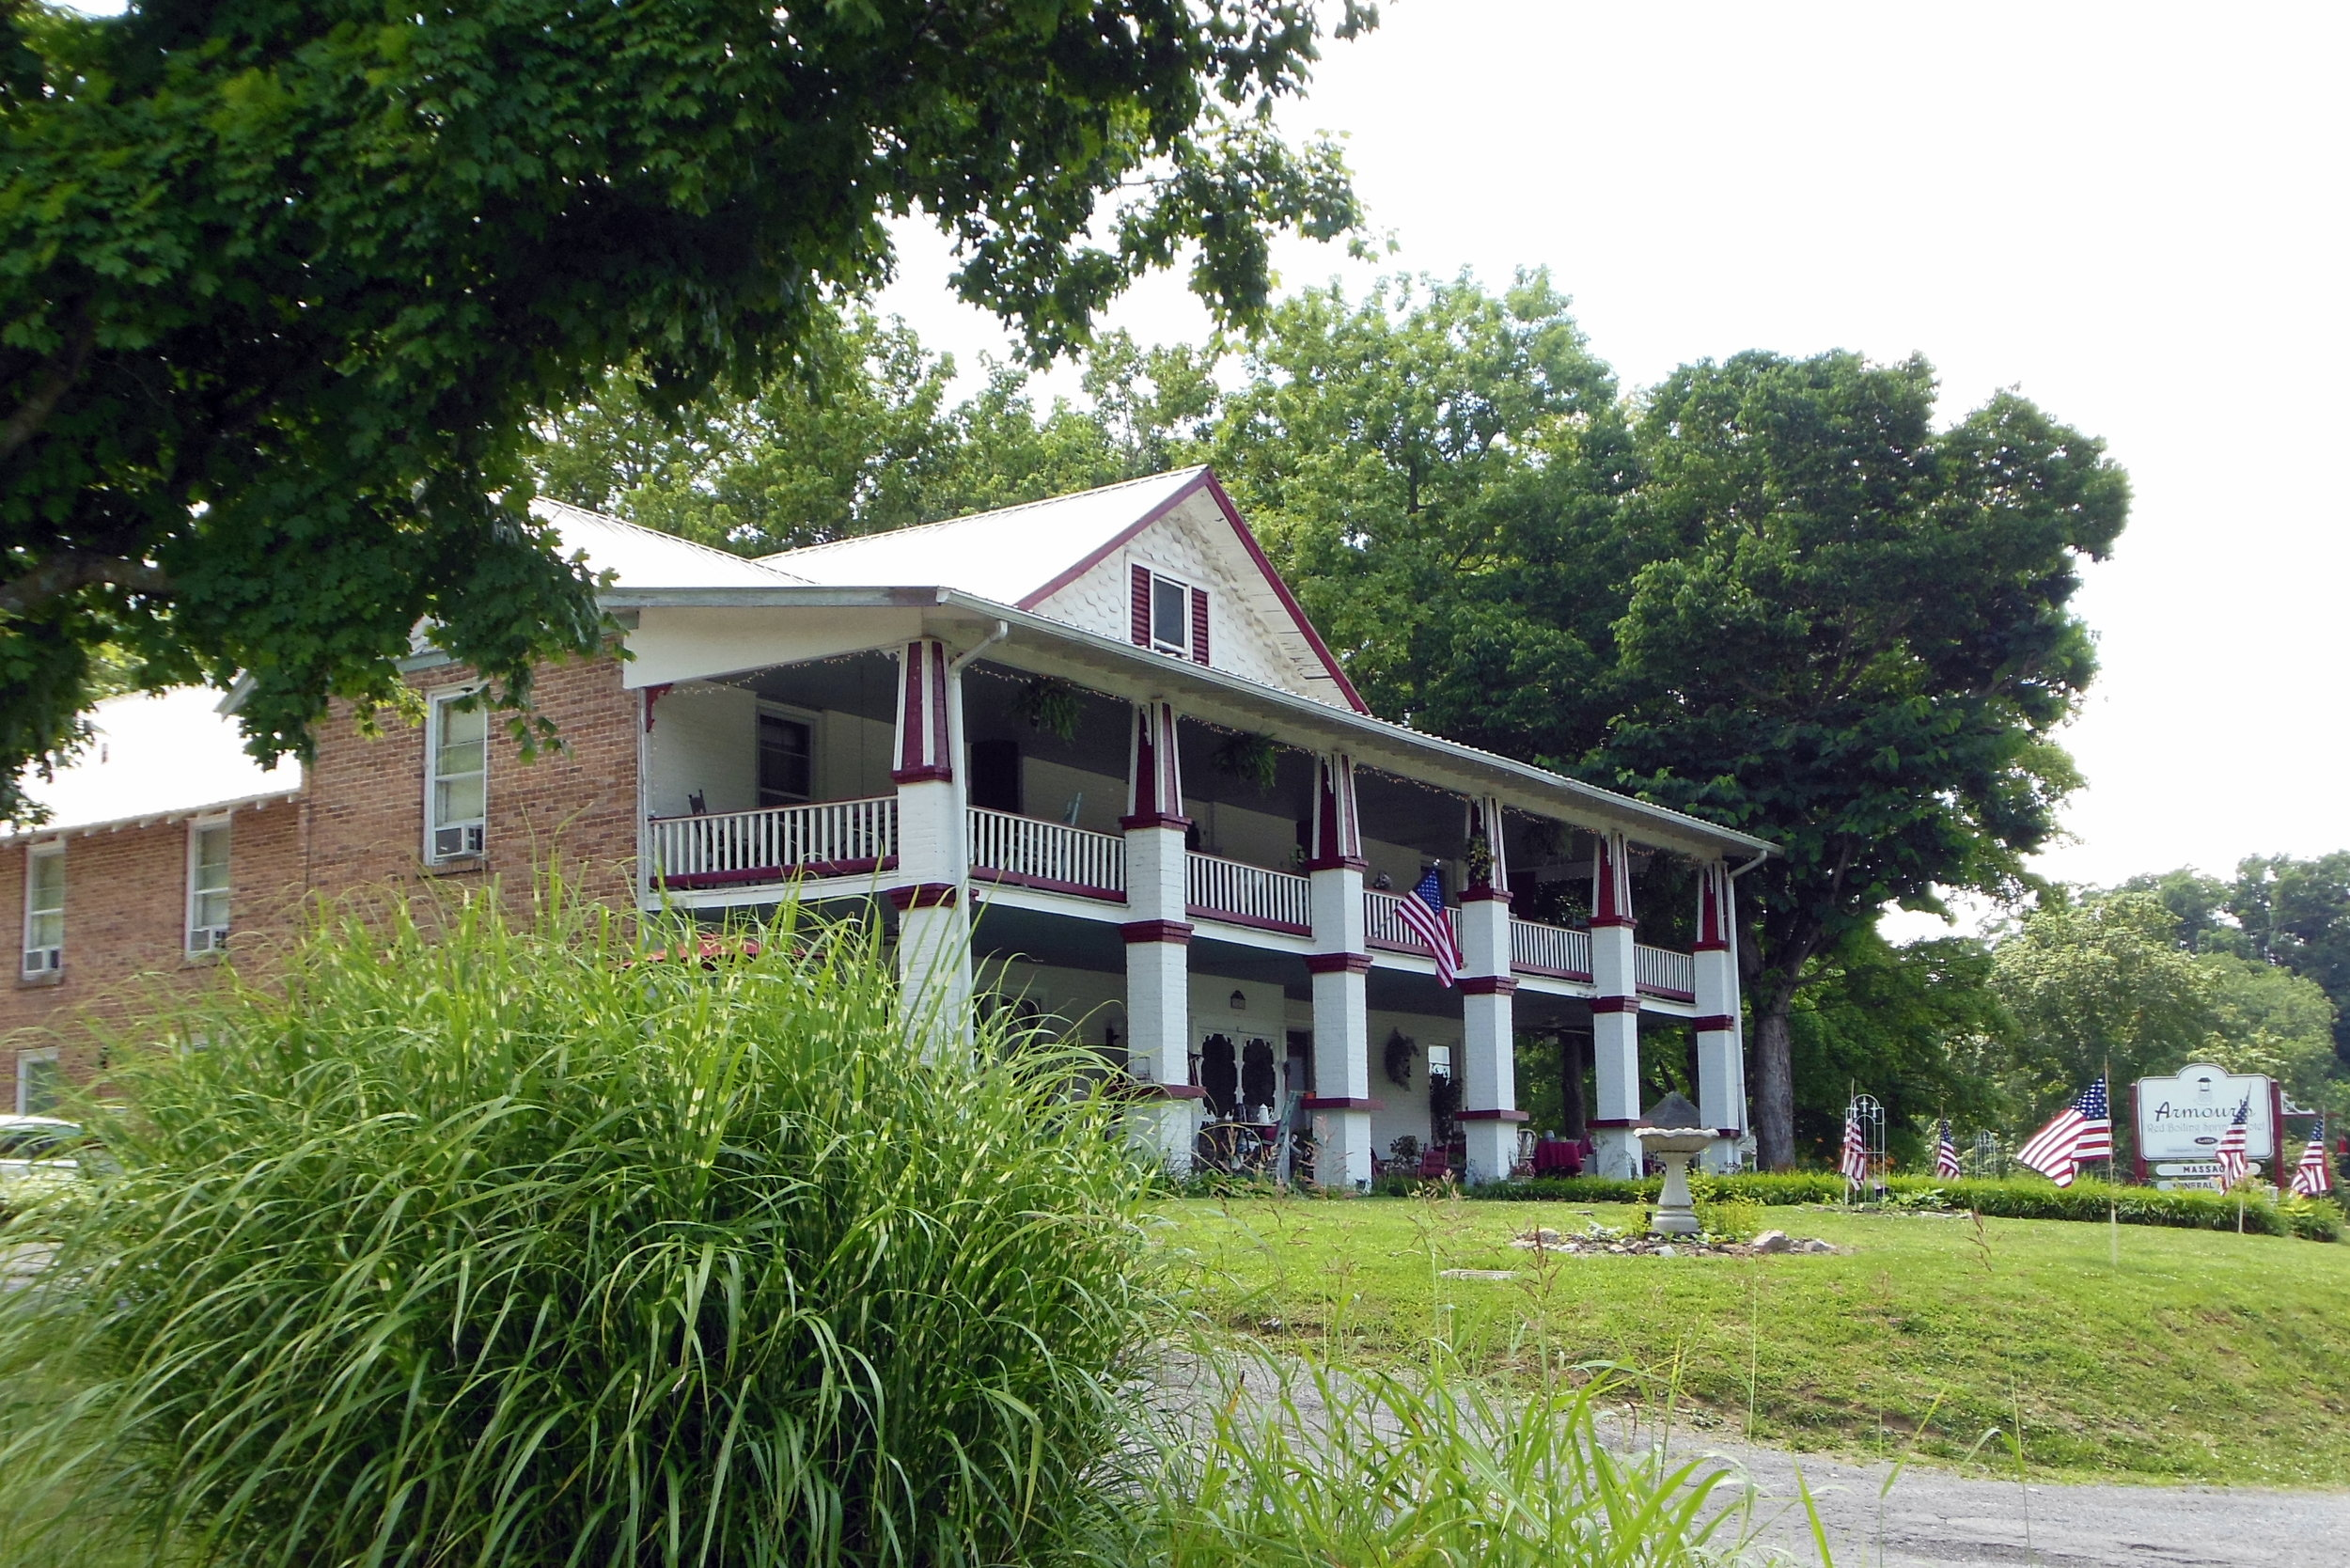 The Armour's Hotel provides a unique lodging experience with themed rooms, plenty of antiques and great southern dishes all served up family style.